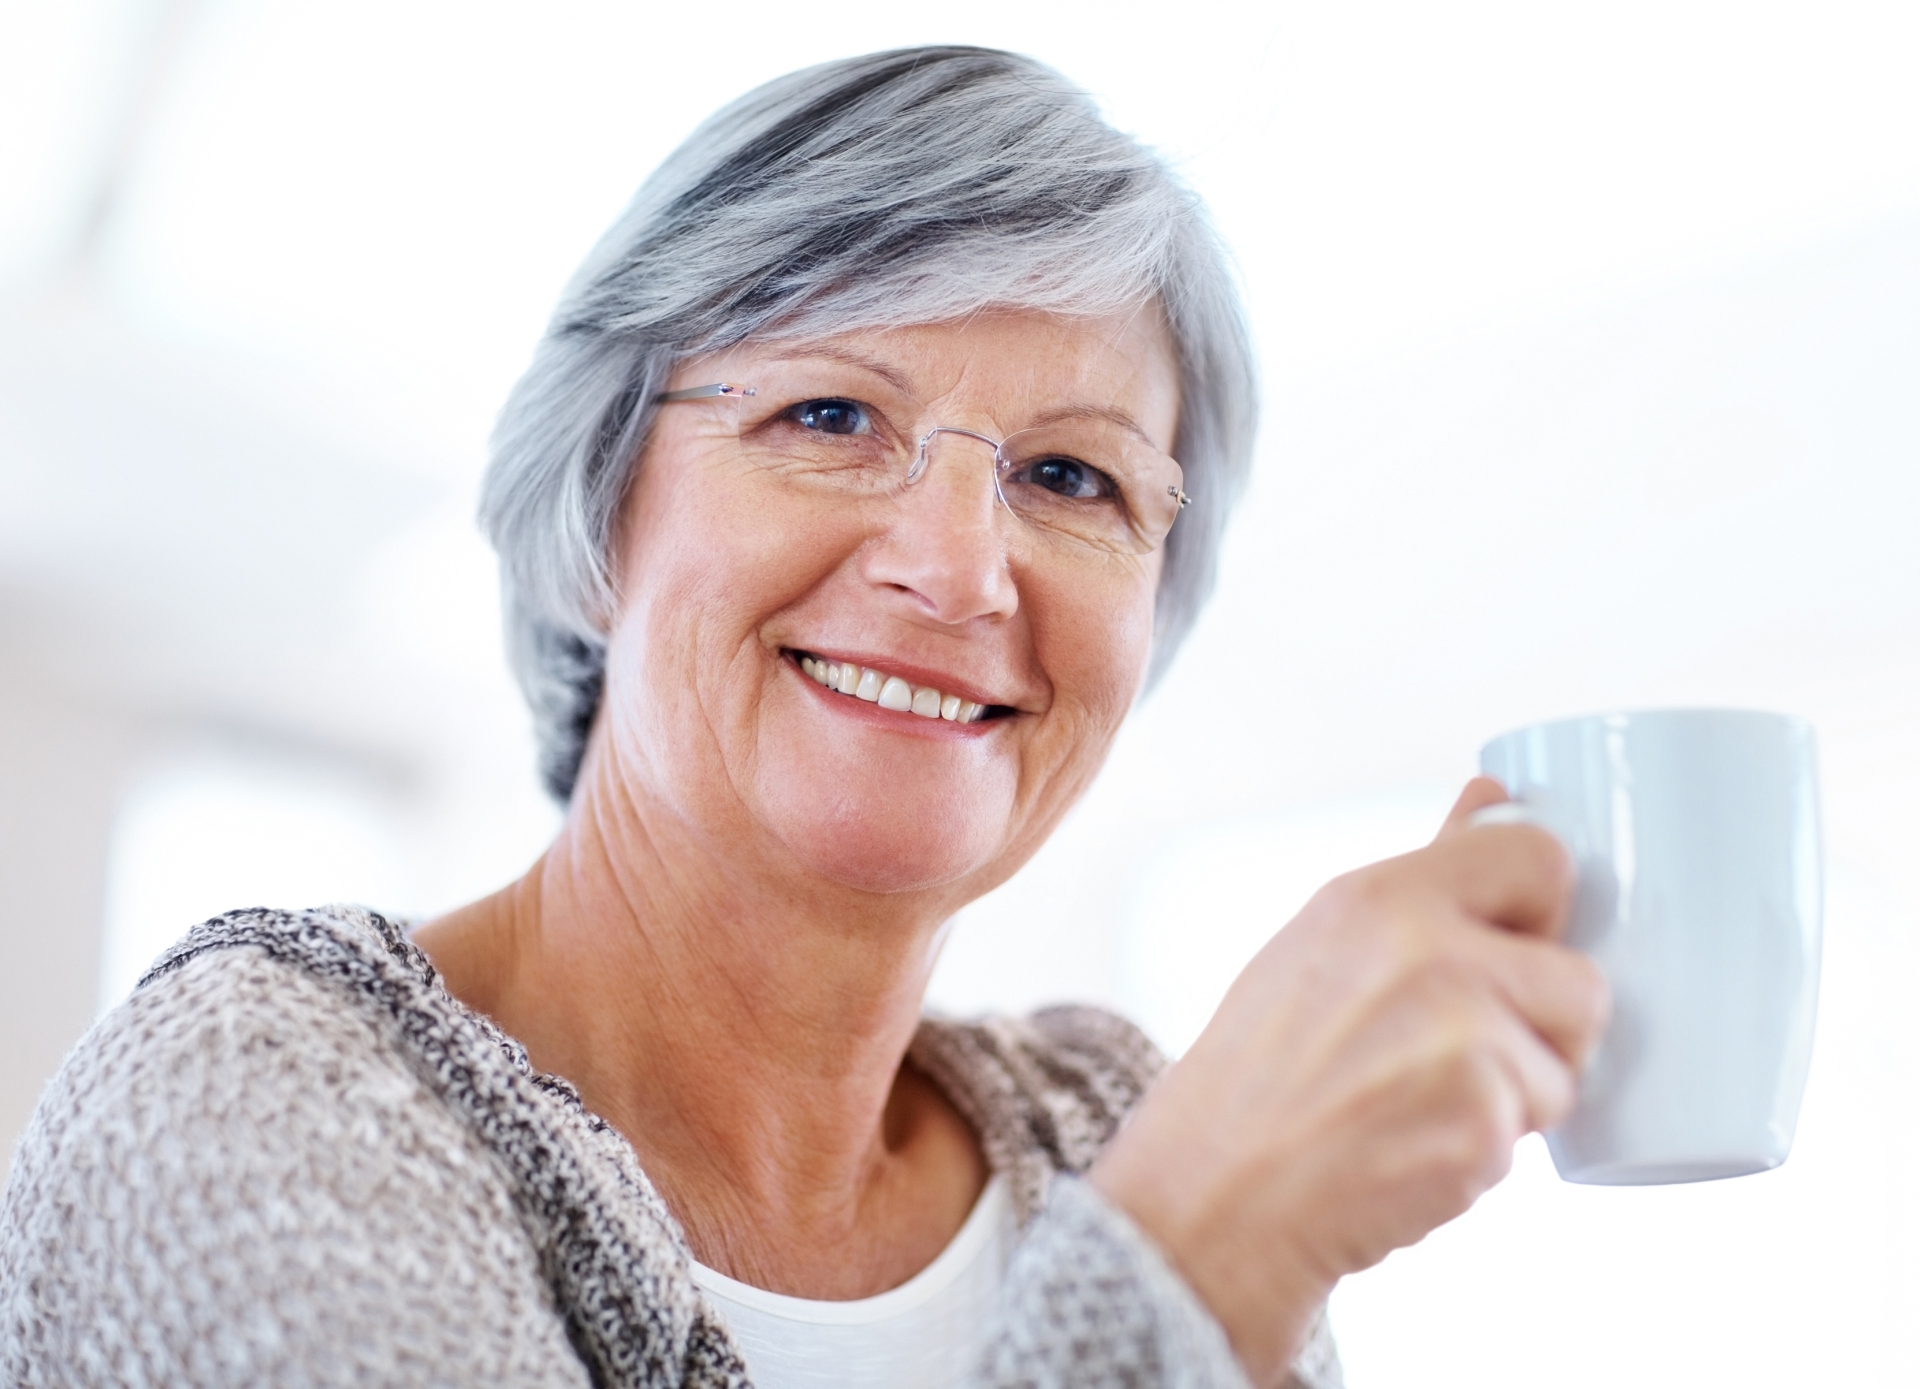 Woman smiling while holding a coffee cup